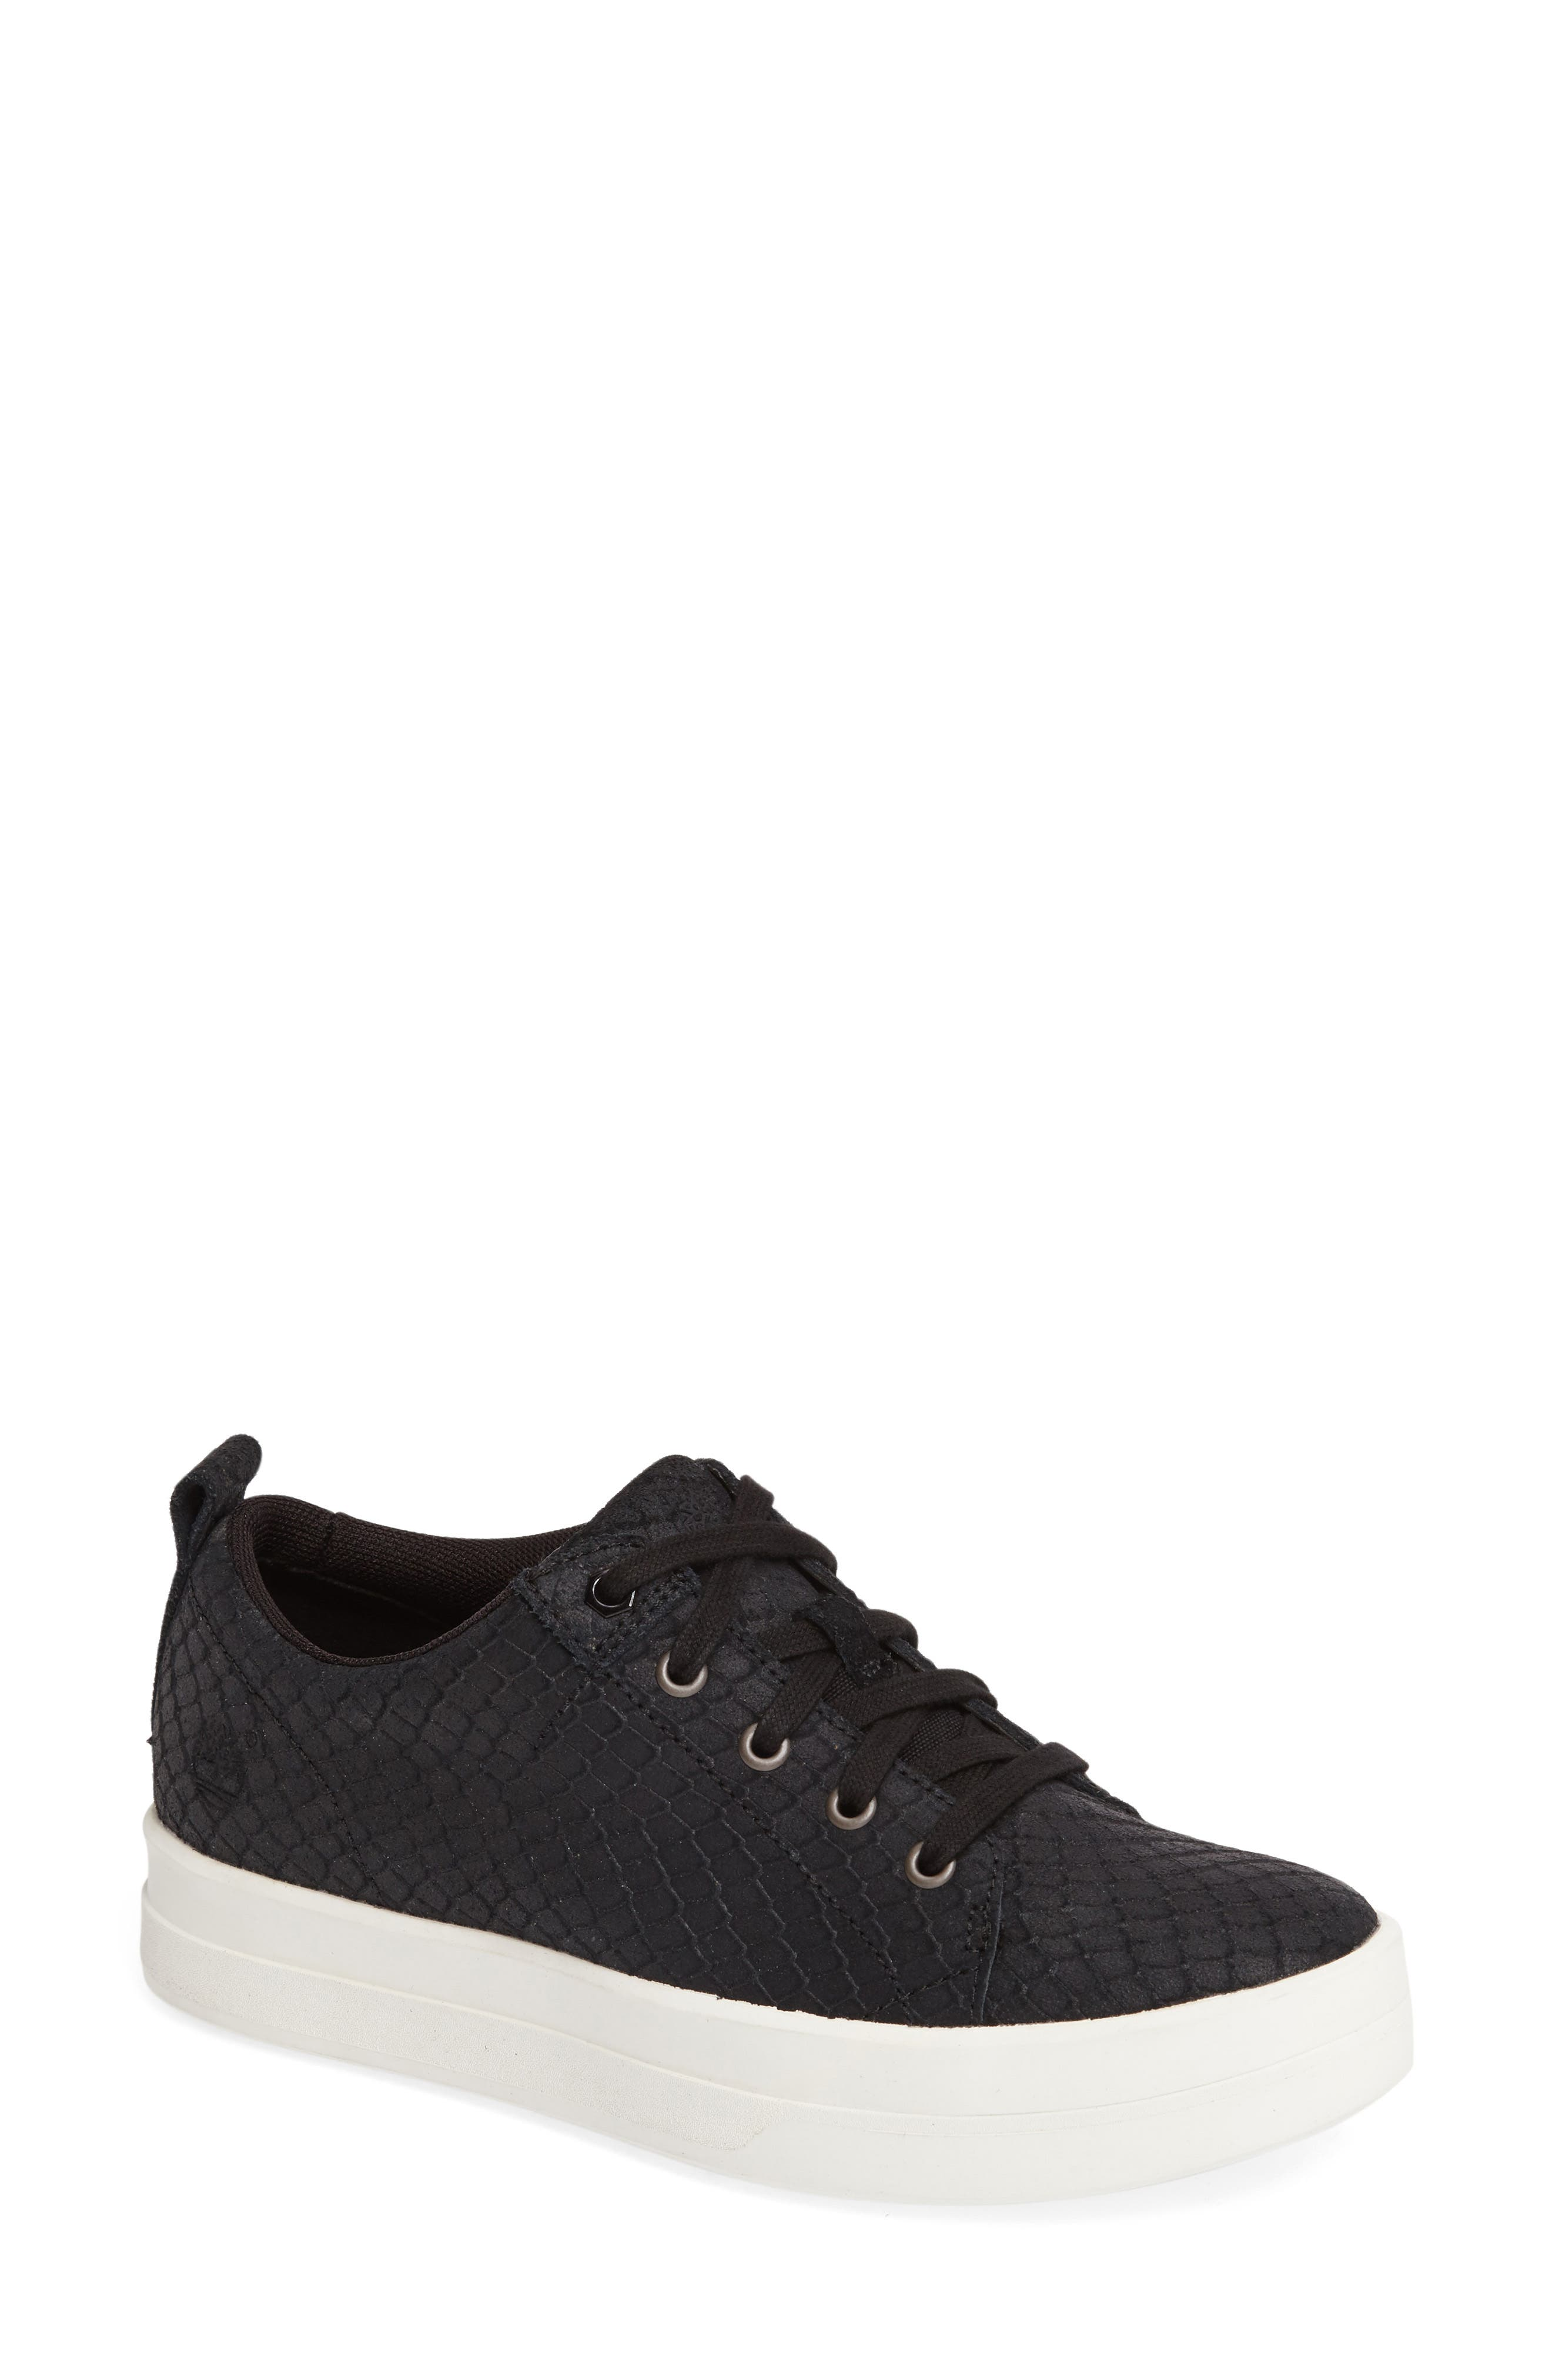 Mayliss Oxford Sneaker,                         Main,                         color, 001